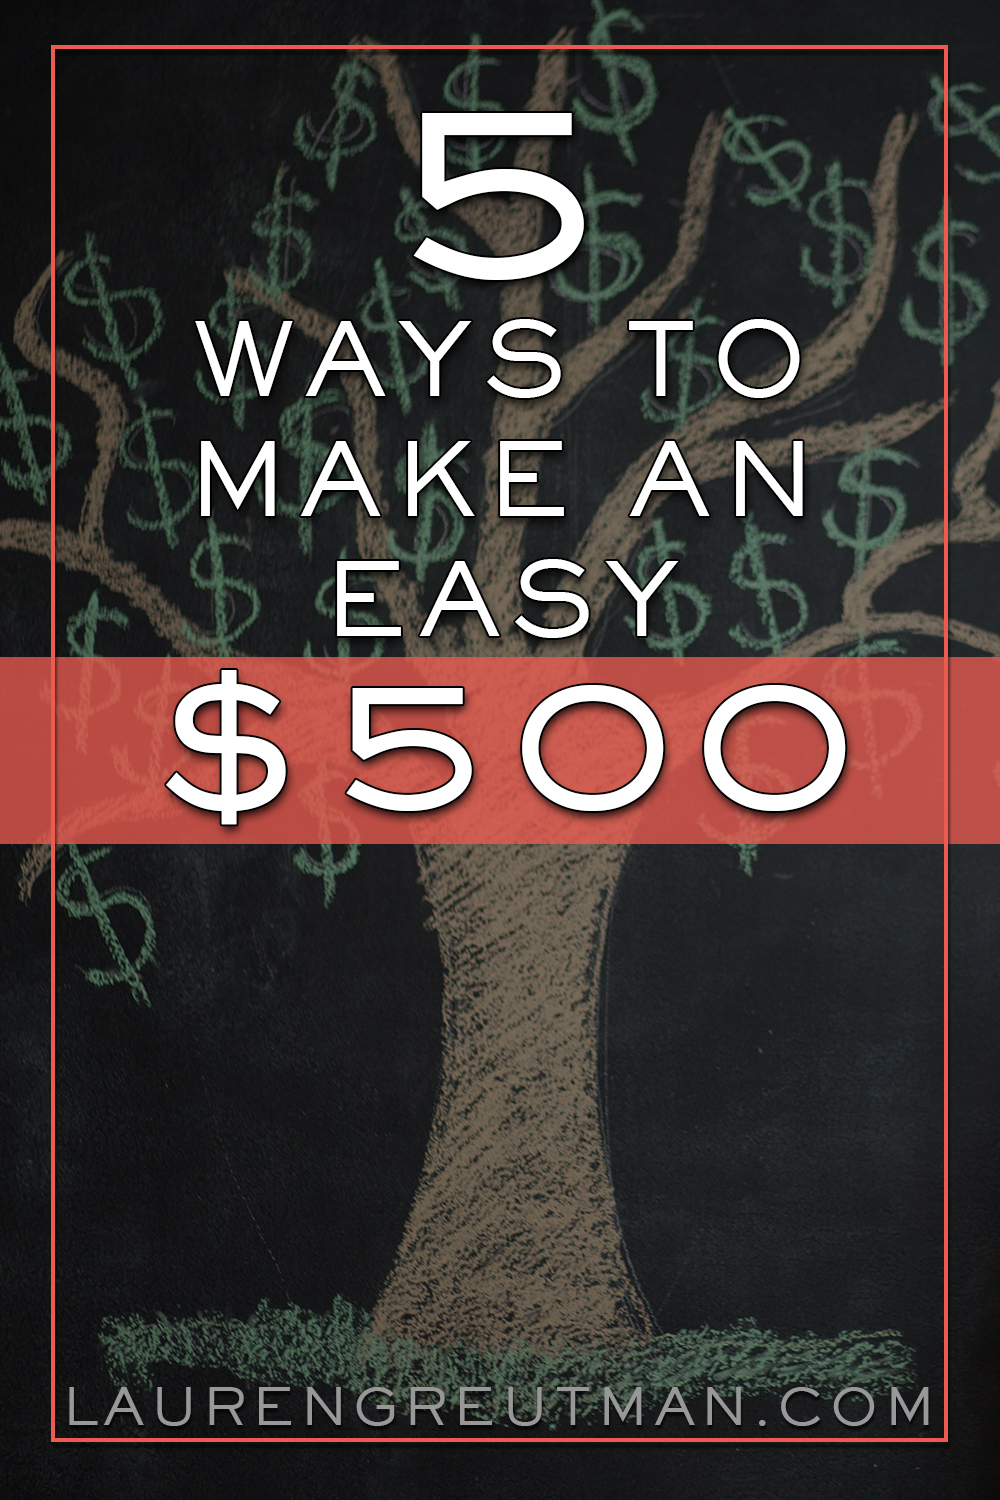 I think everyone is wondering how to make extra money on the side. I mean, who couldn't use some extra dough? Here are 5 ways you can make an extra $500.